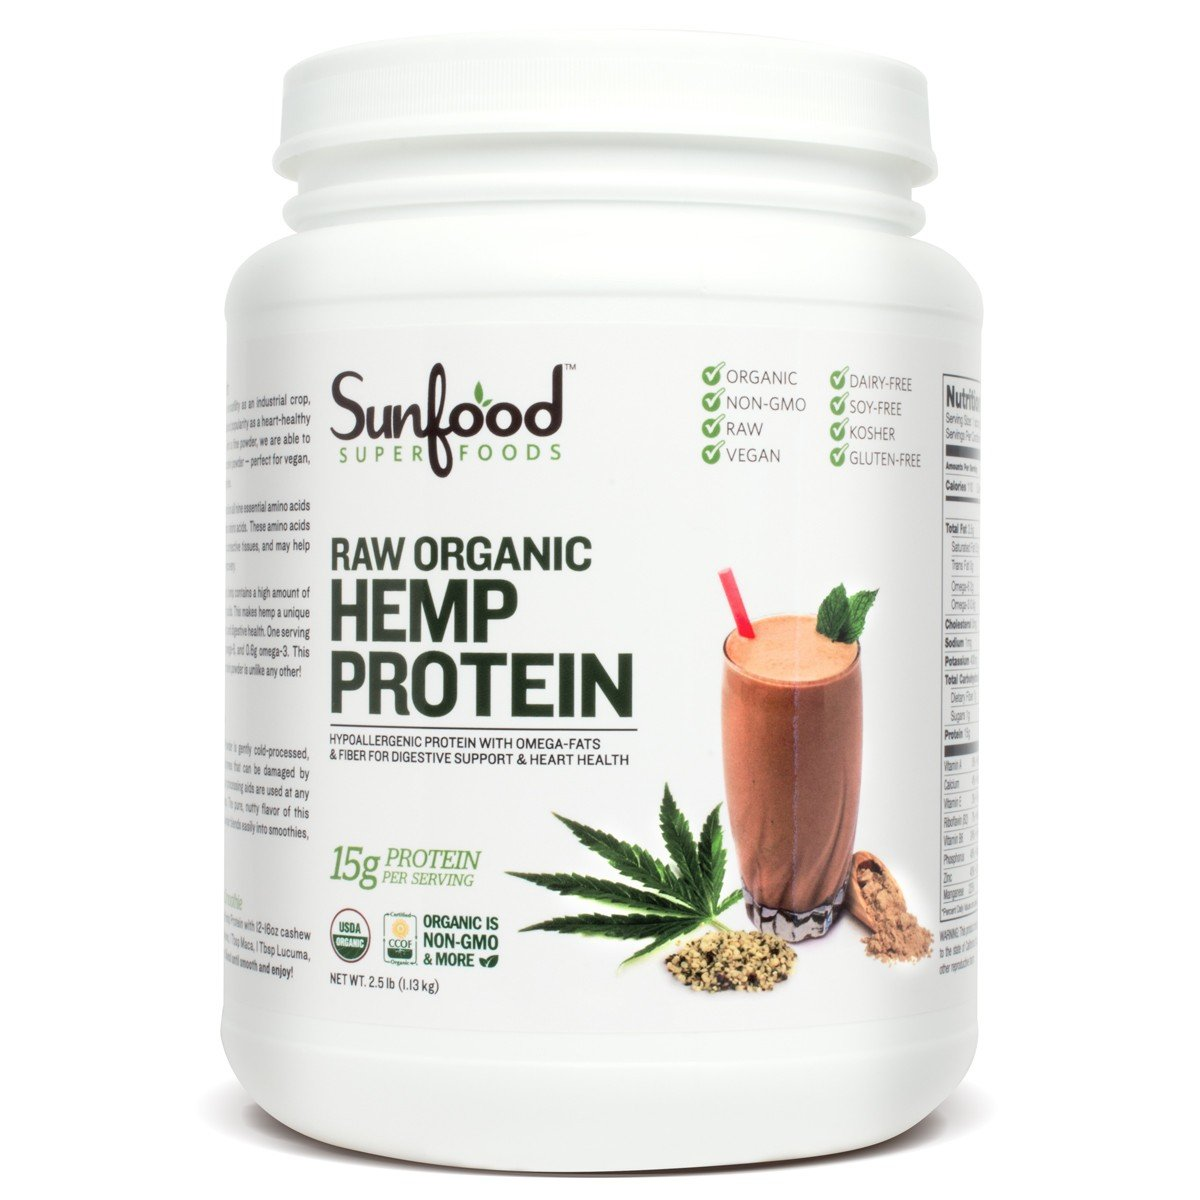 Sunfood Hemp Protein, 2.5 Pounds Tub, Organic, Raw by Sunfood Superfoods